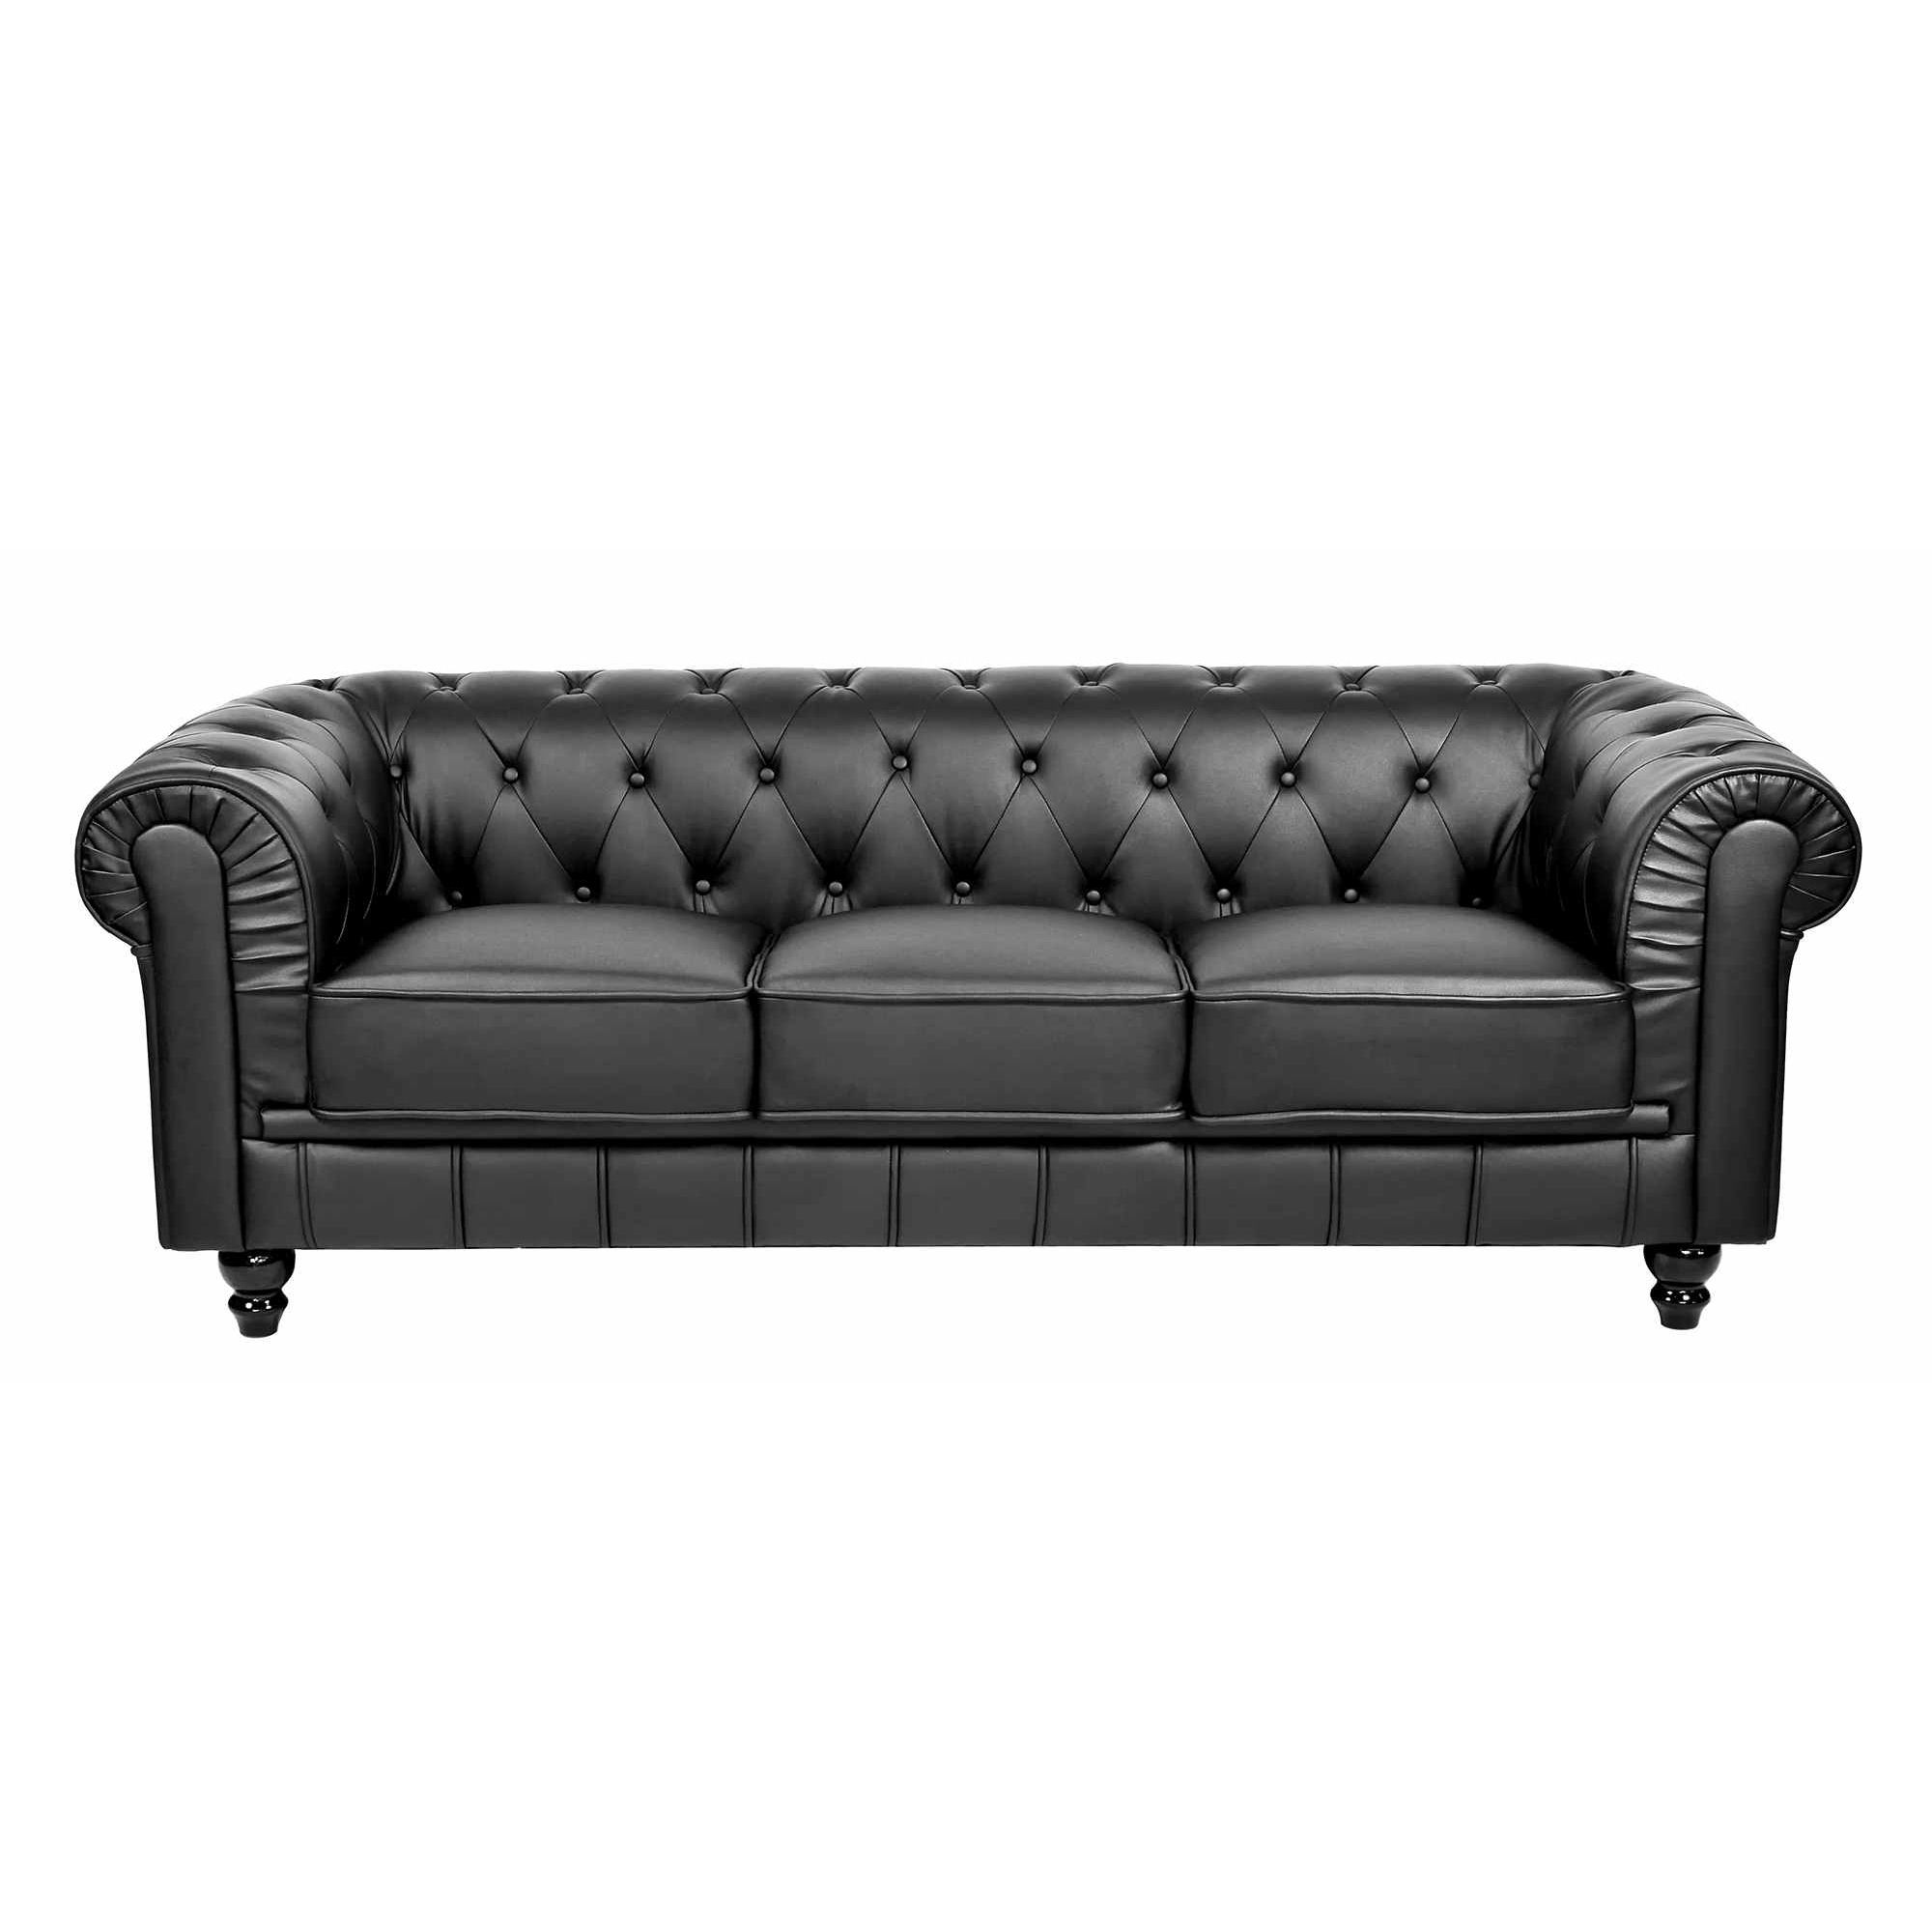 deco in paris ensemble canape 3 2 1 places noir chesterfield ens321 noi chest. Black Bedroom Furniture Sets. Home Design Ideas